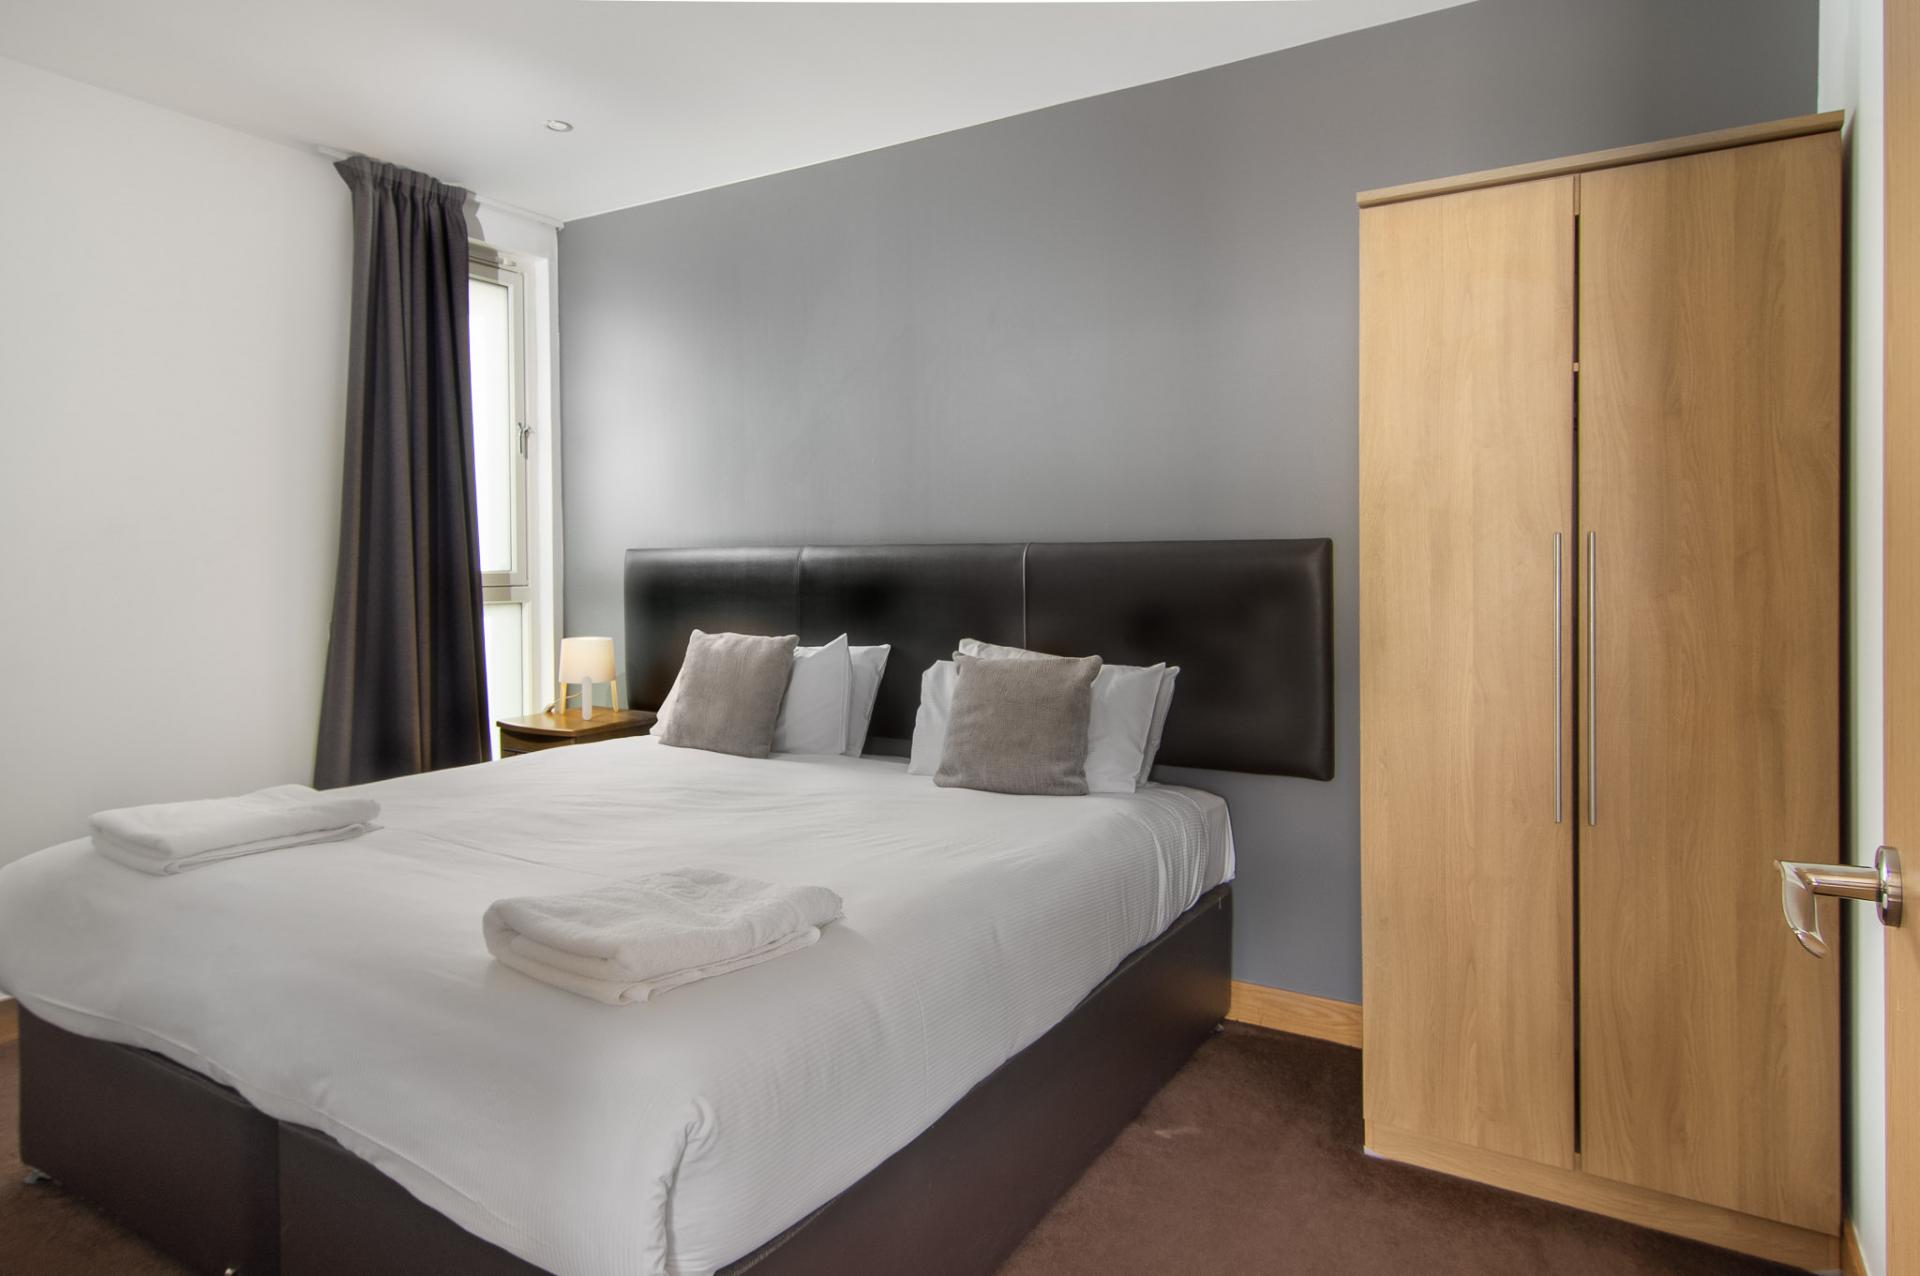 Wardrobe at Staycity Edinburgh Leamington Wharf, Haymarket, Edinburgh - Citybase Apartments